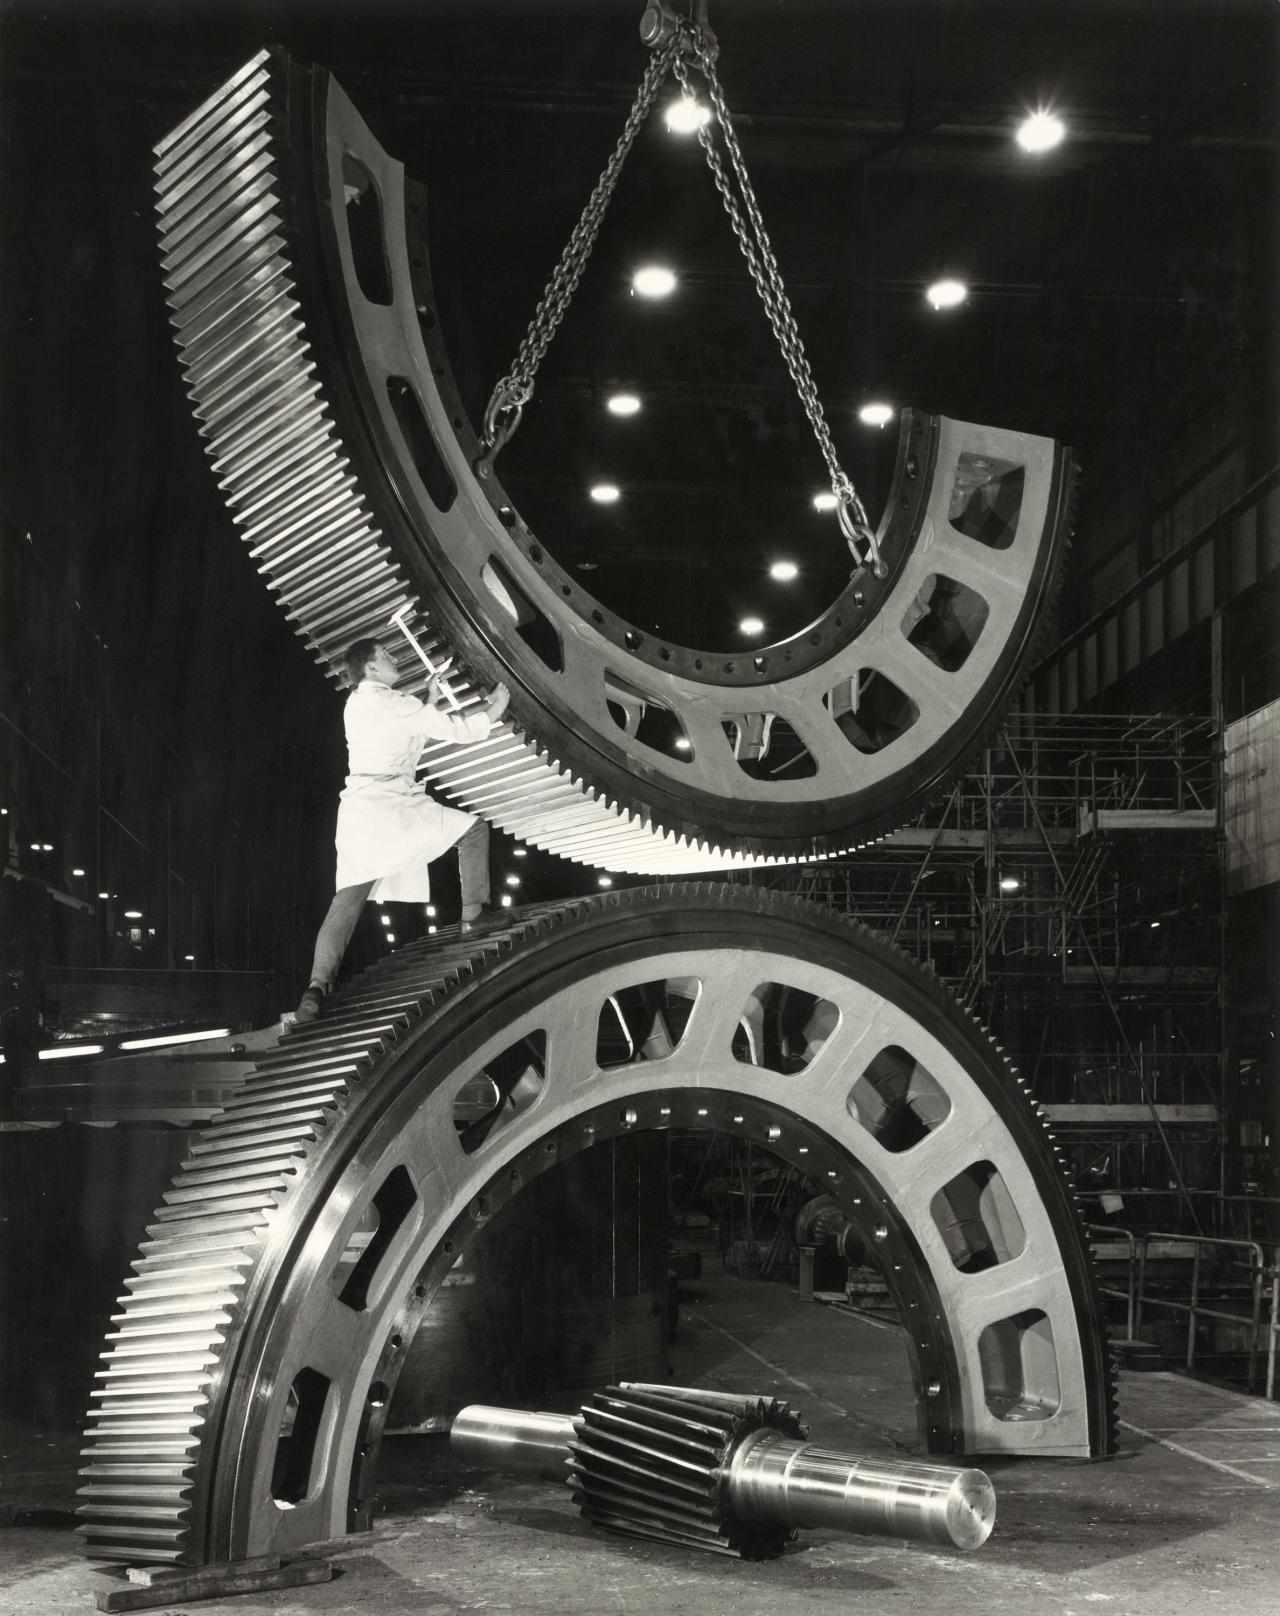 Gears for mining industry, Vickers-Ruwolt, Melbourne